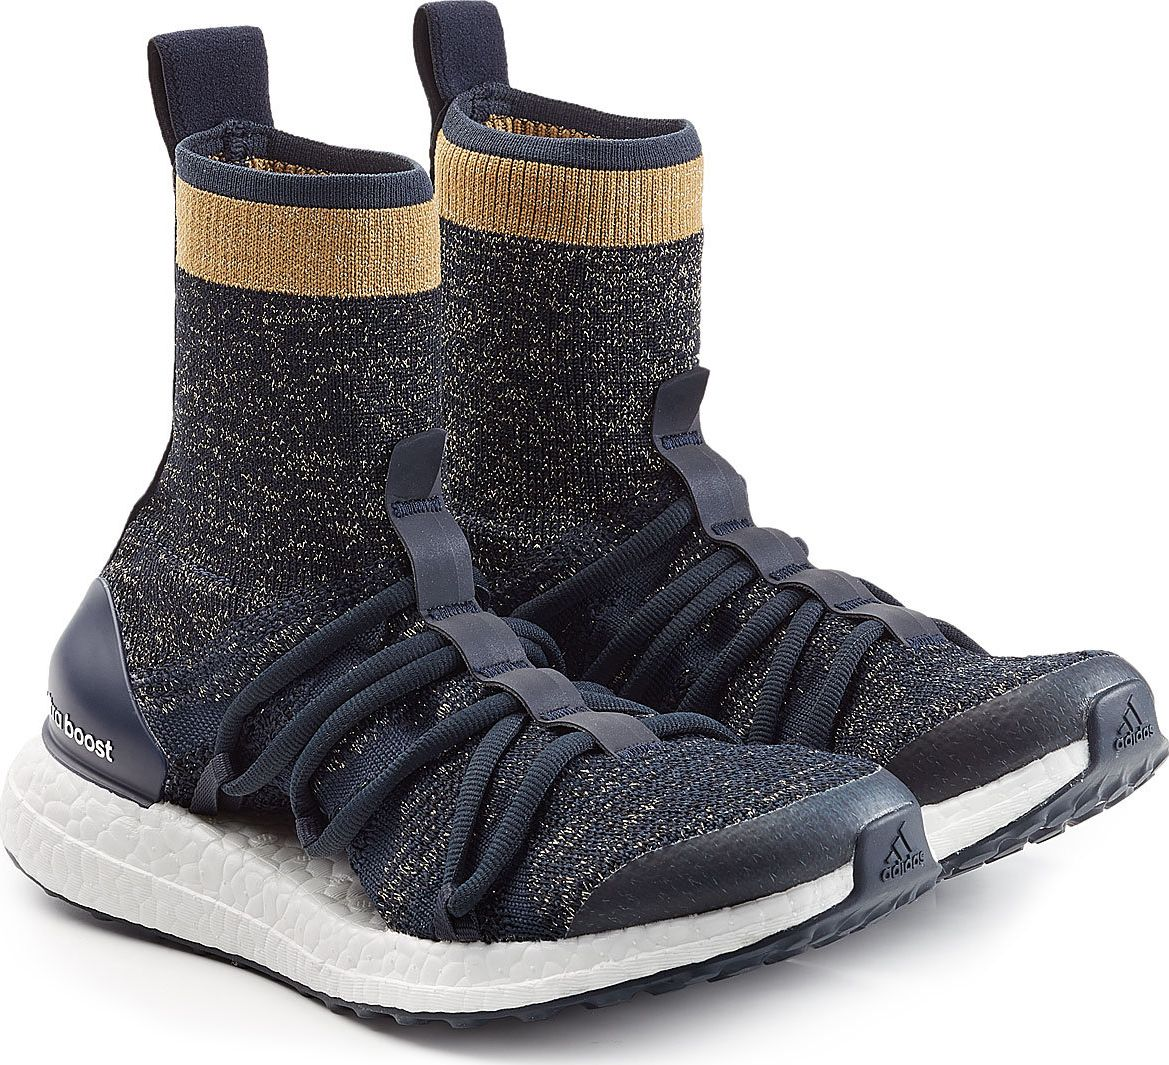 adidas by stella mccartney ultra boost x mid sneakers mkt. Black Bedroom Furniture Sets. Home Design Ideas